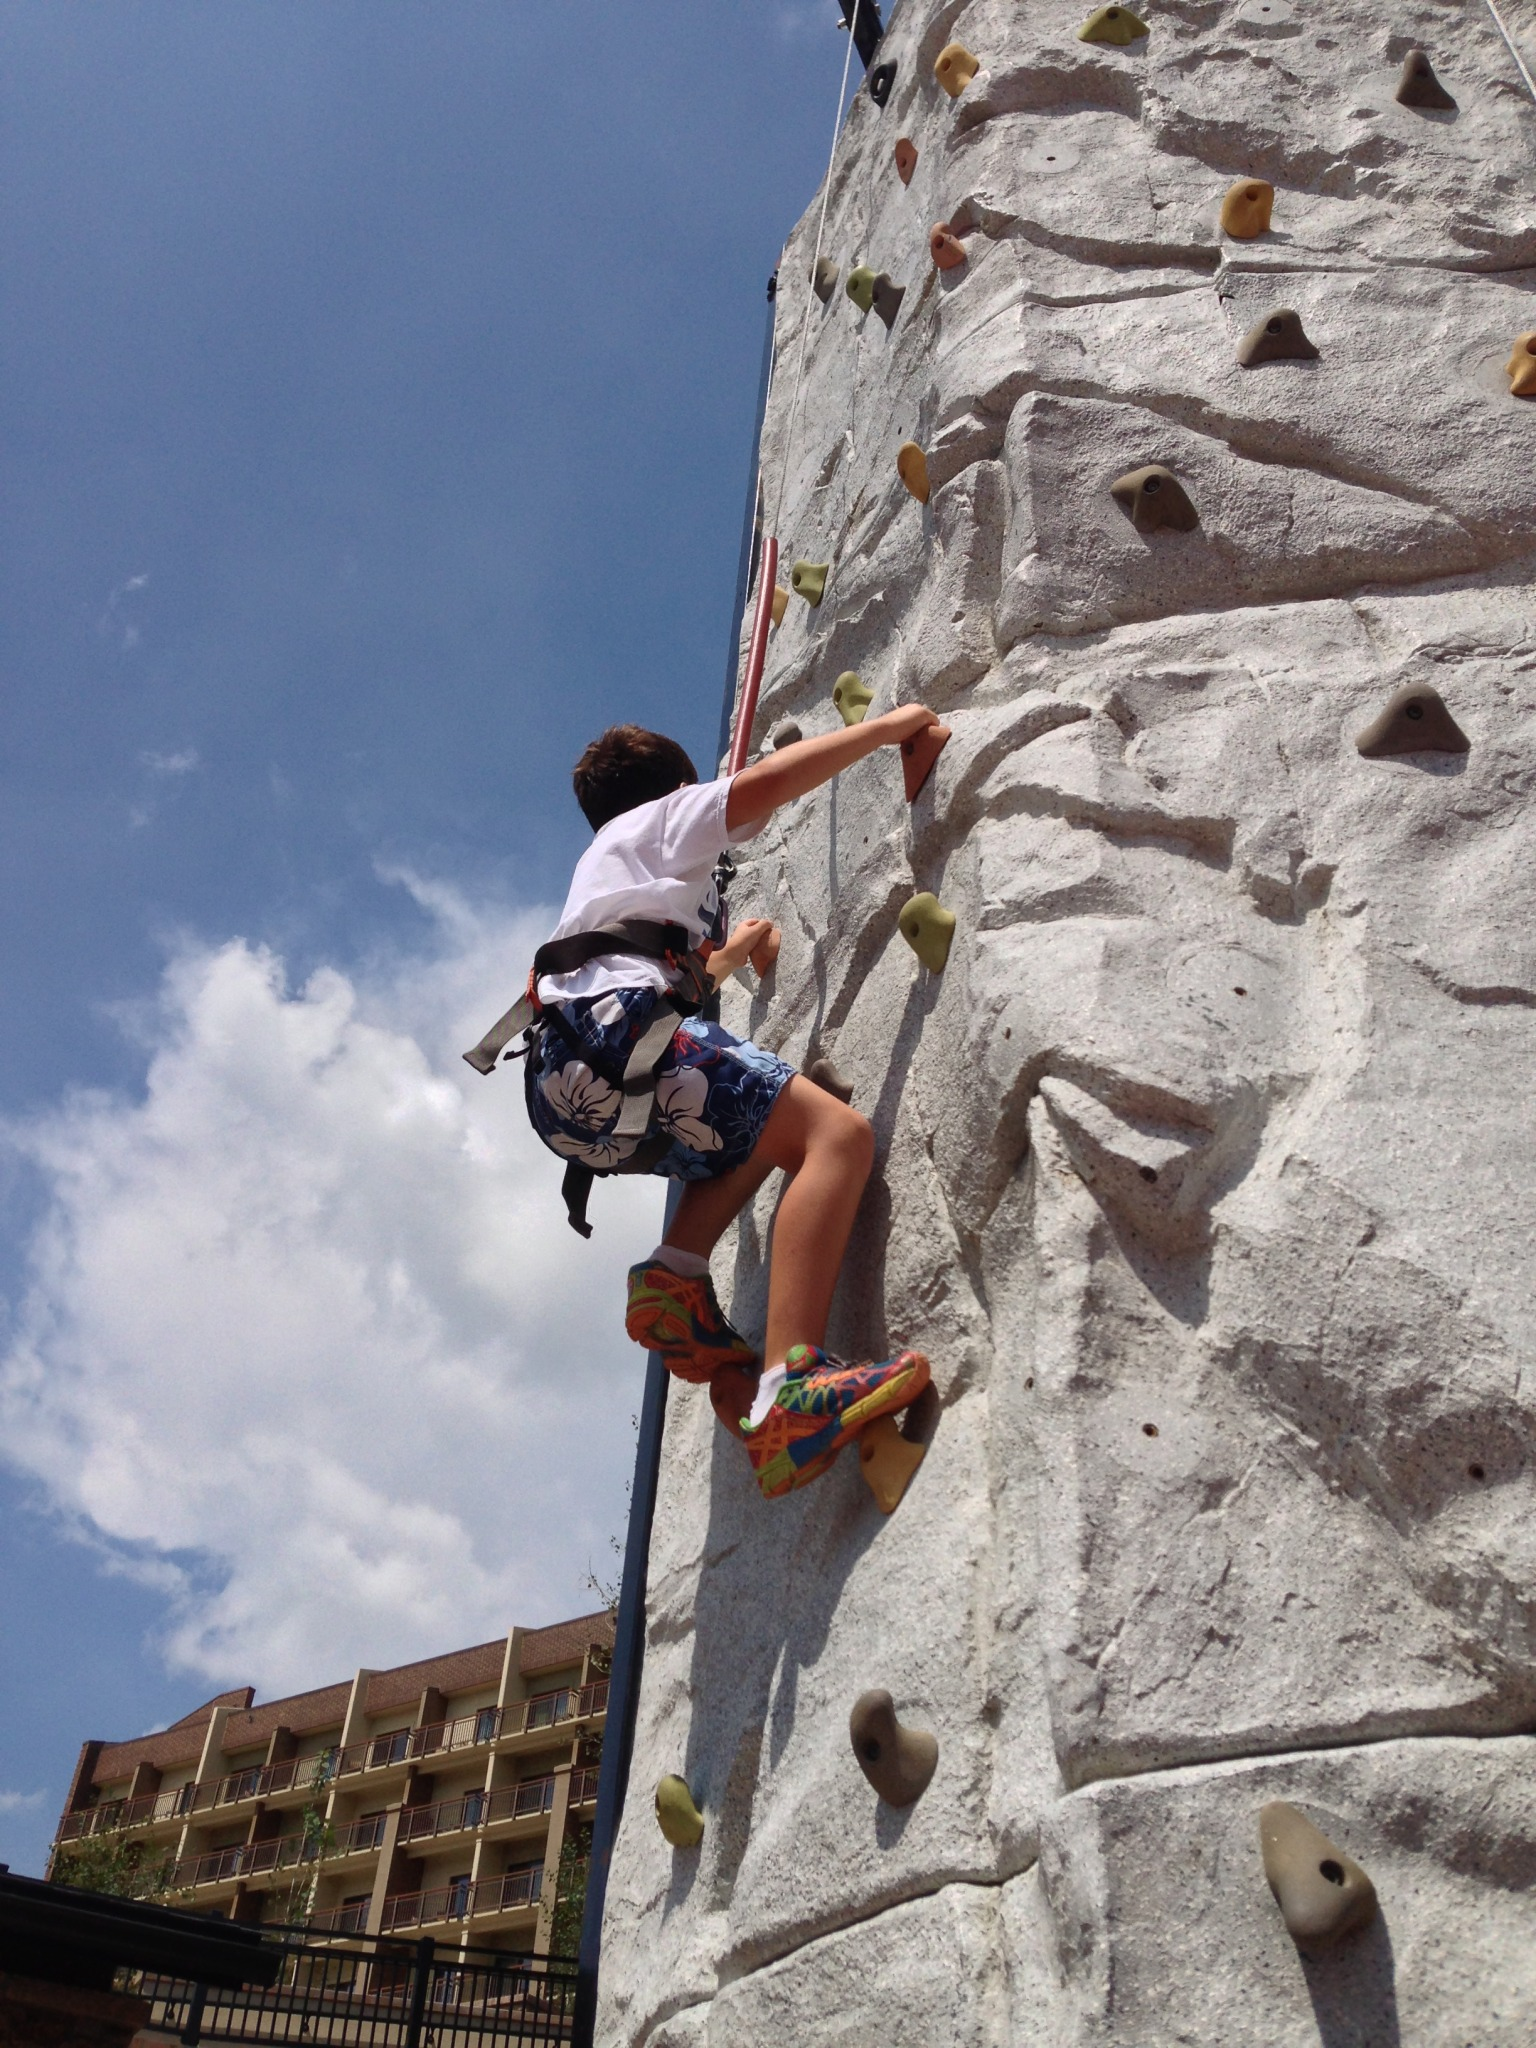 The climbing wall at Steamboat